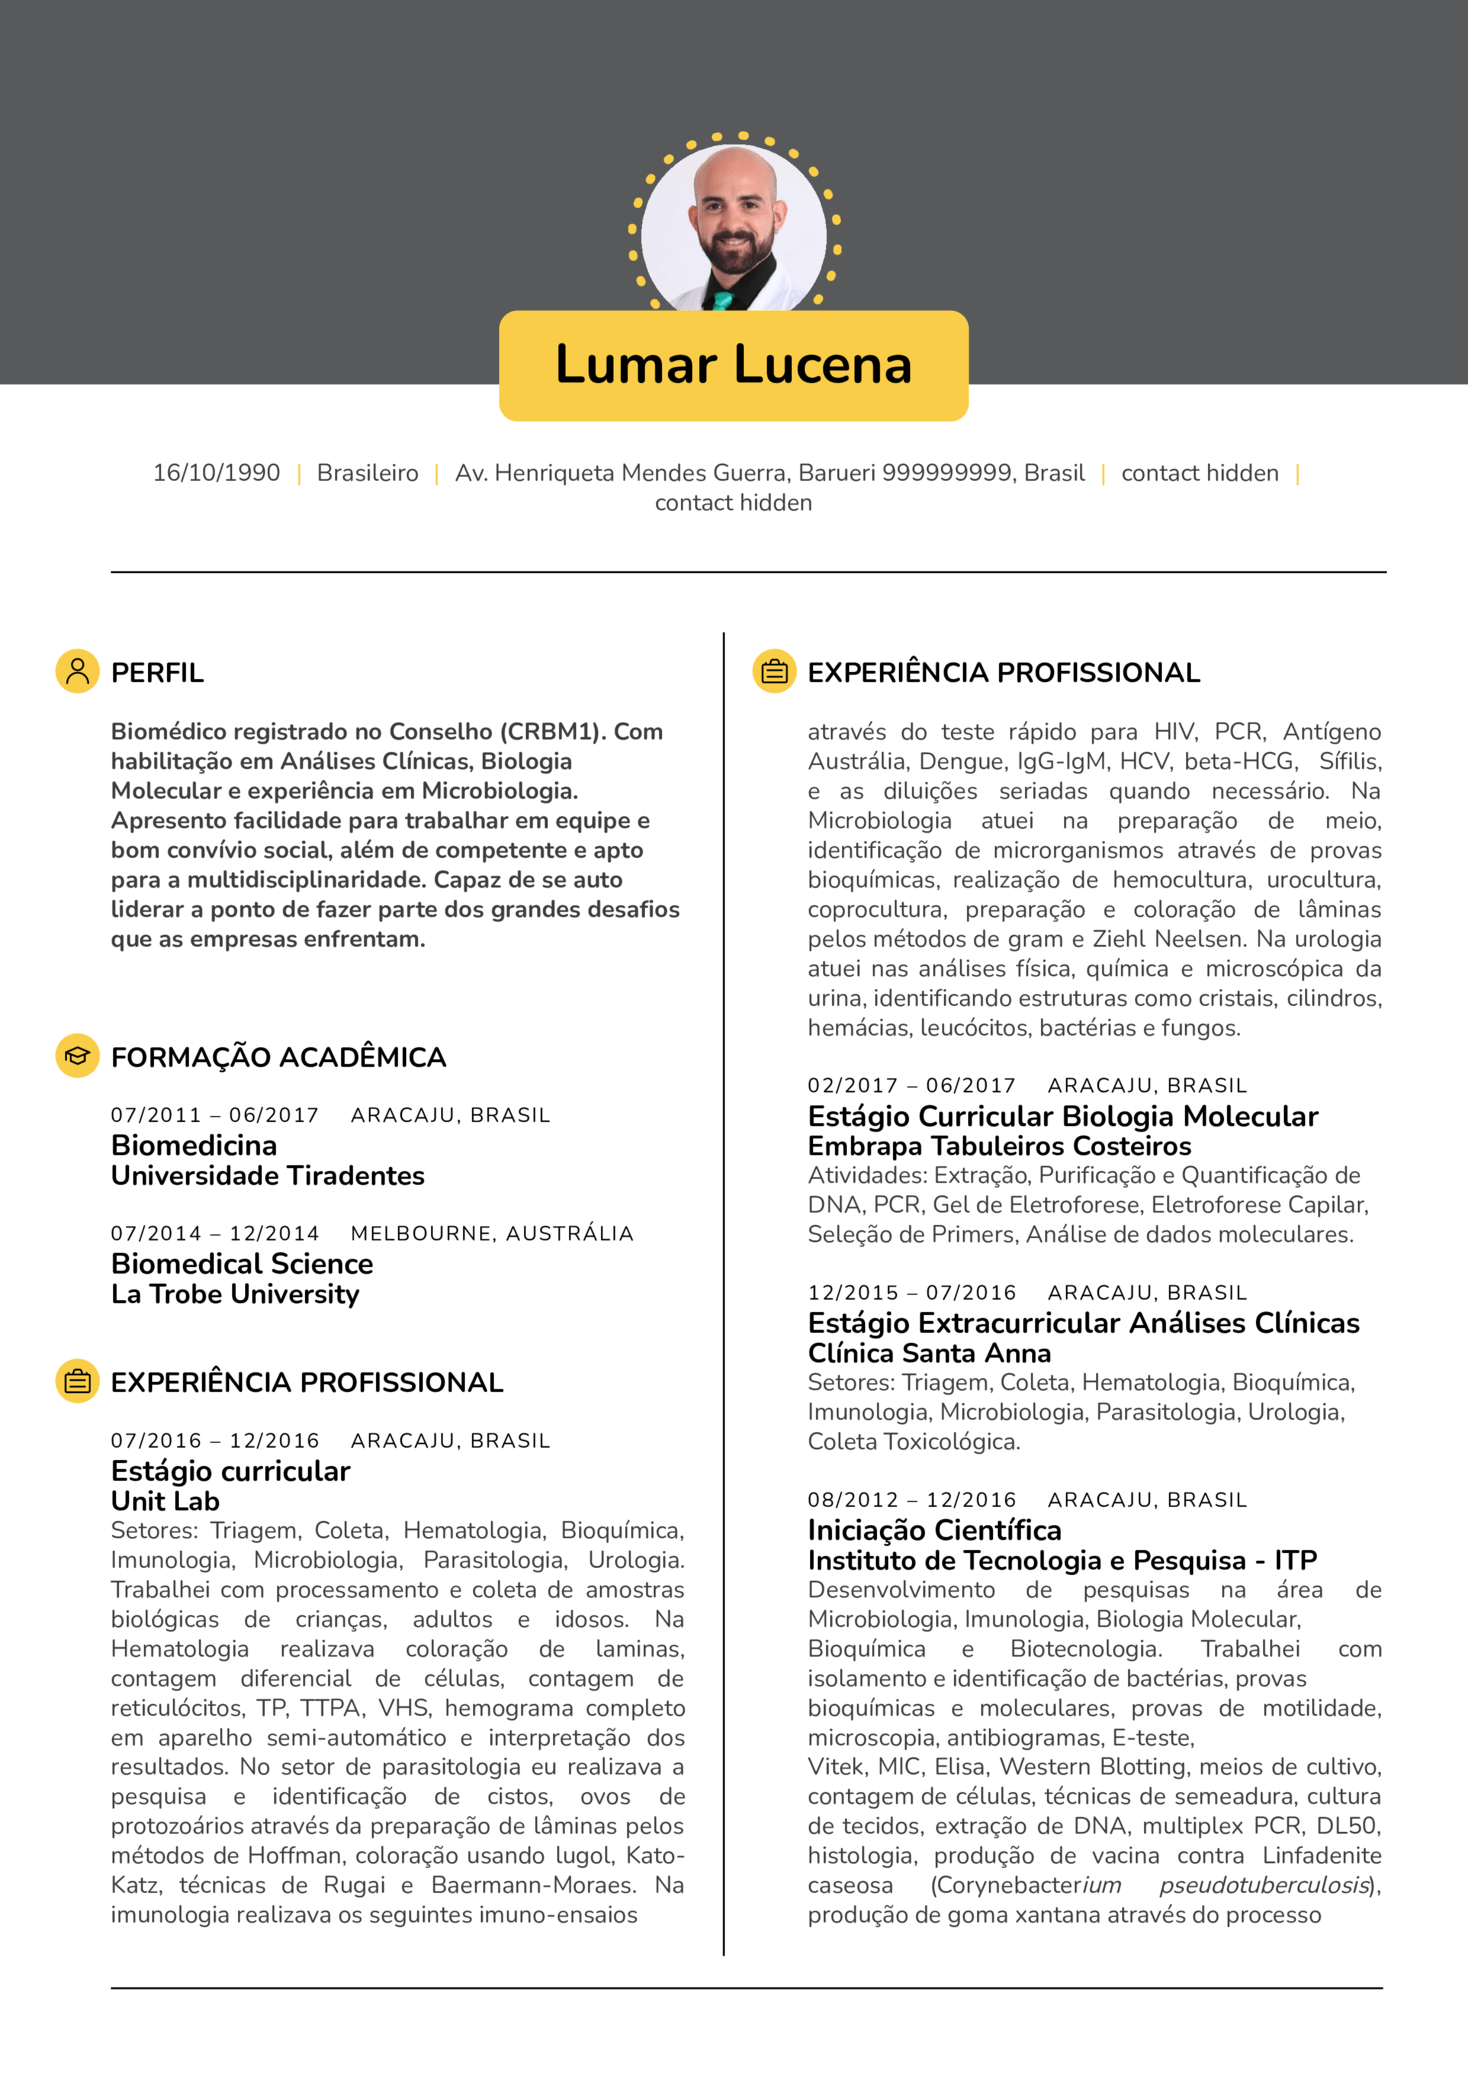 resume examples by real people  analista de laborat u00f3rio